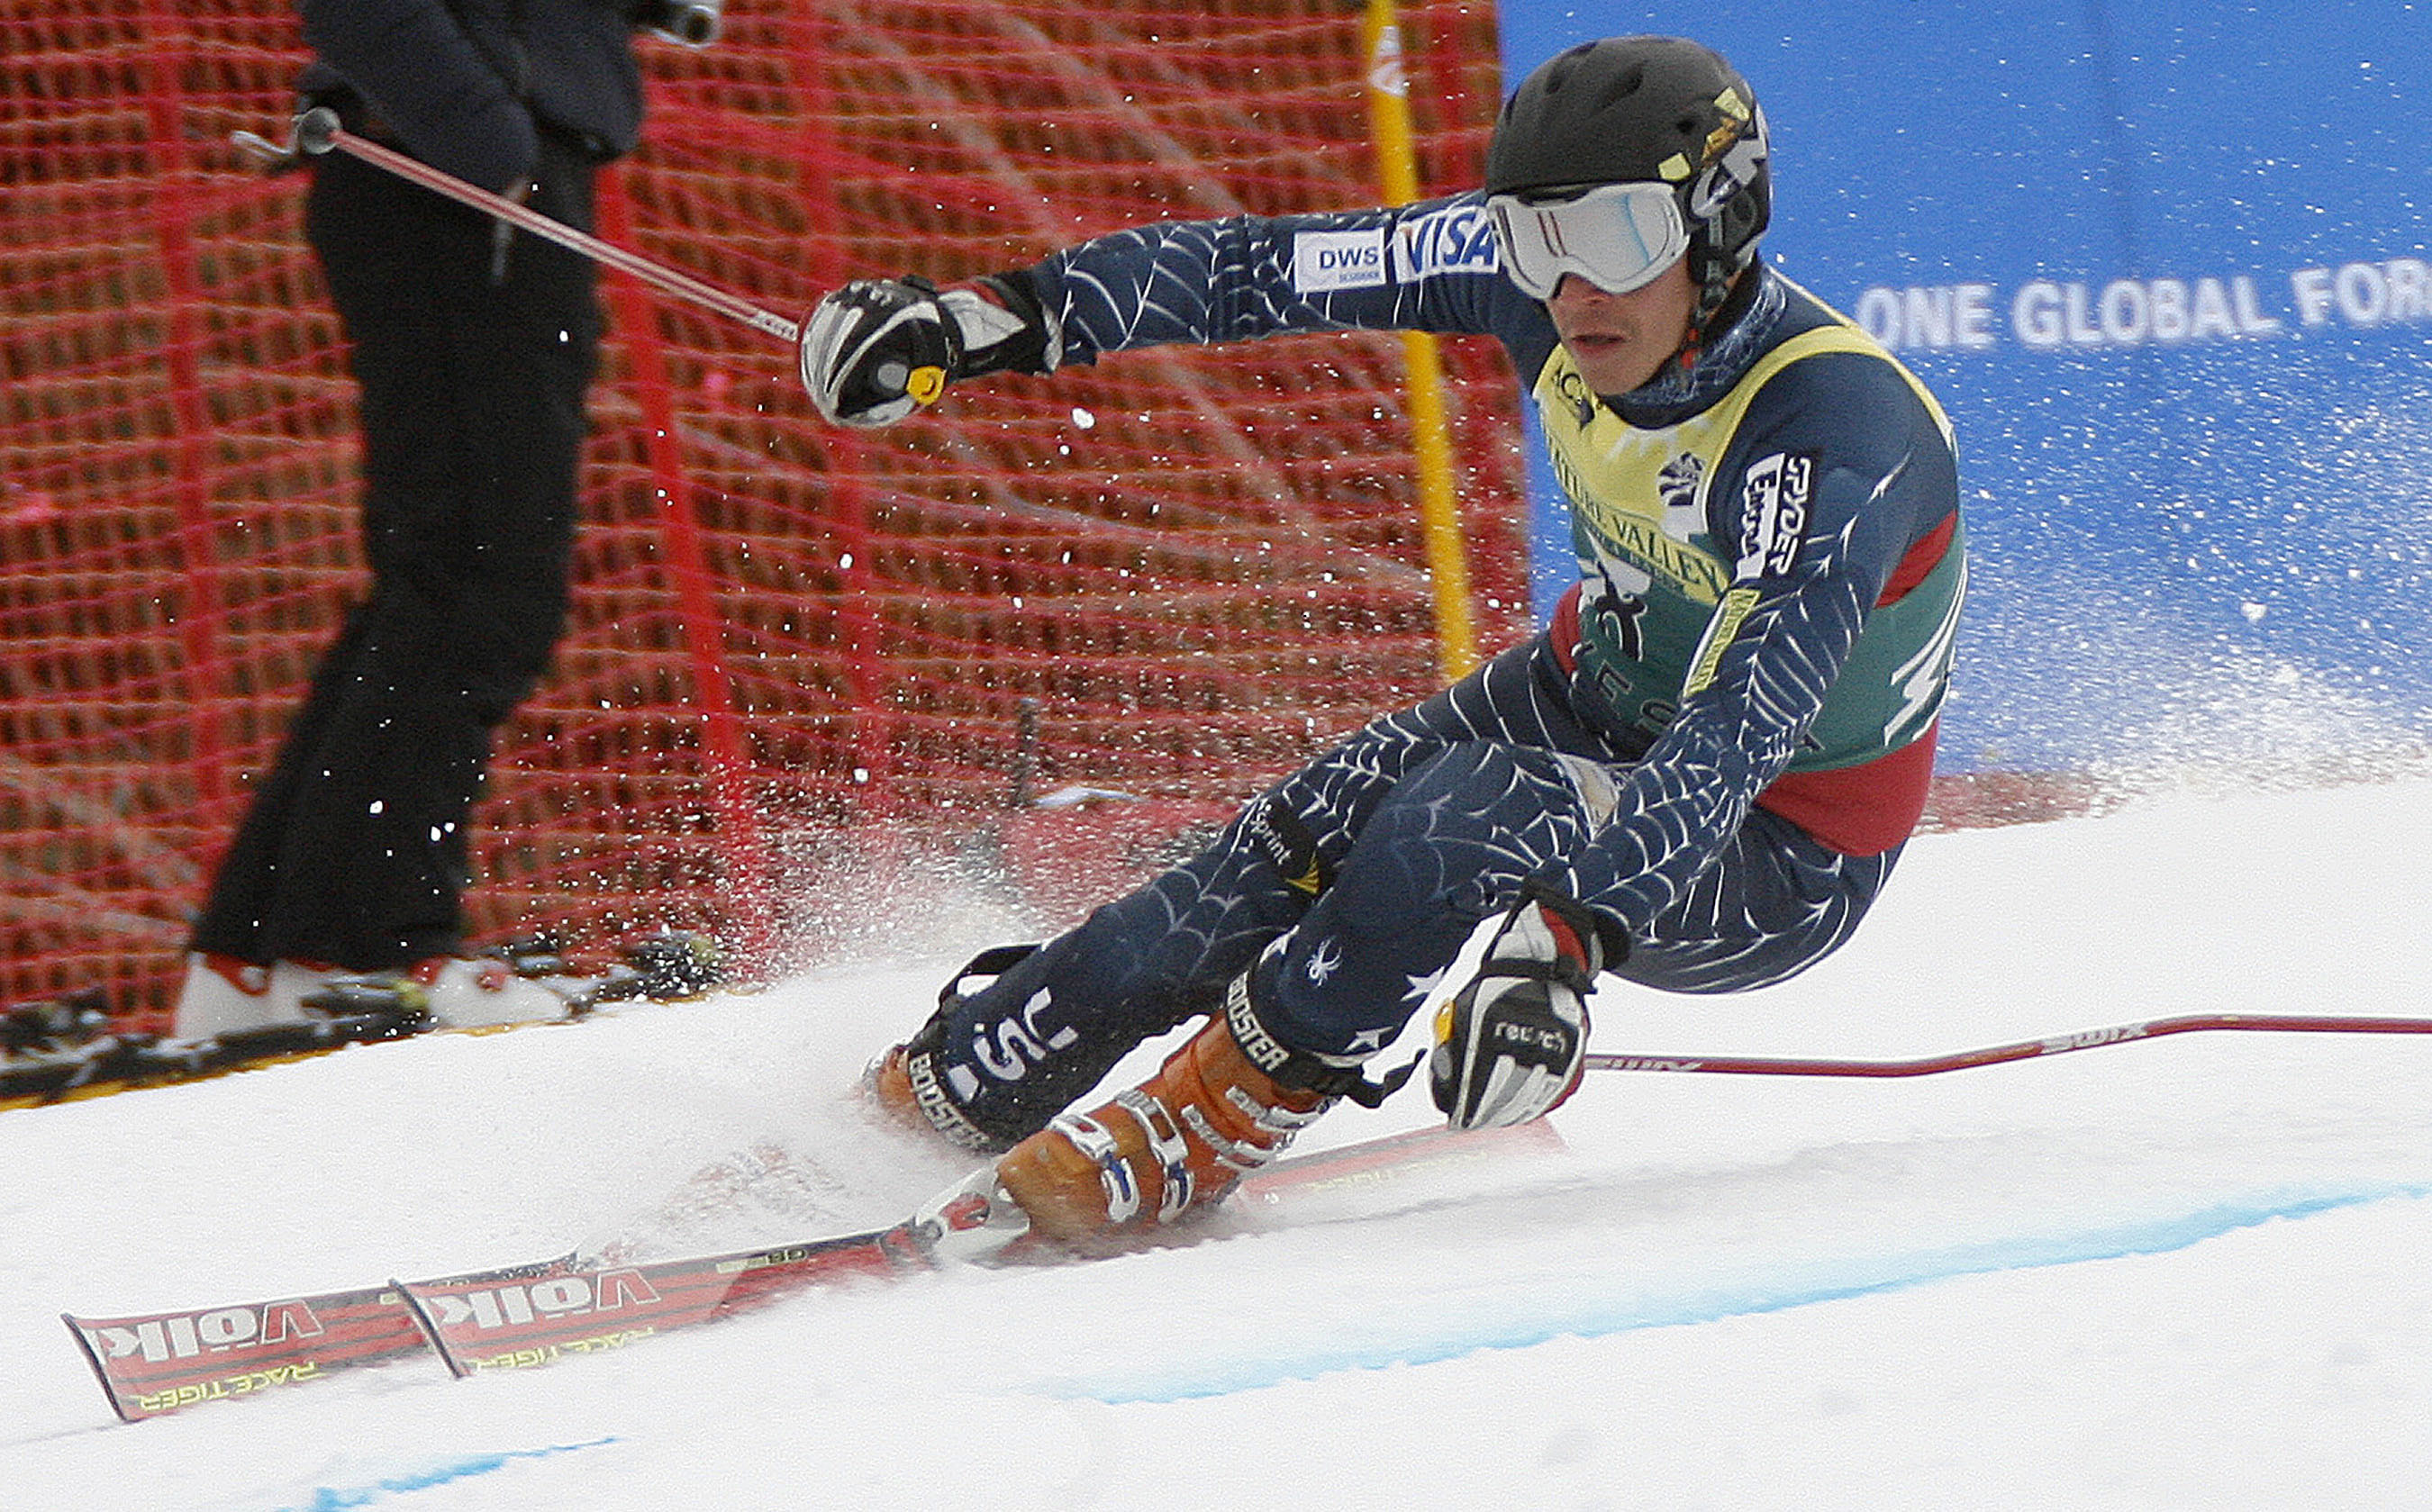 FILE - In this April 3, 2007, file photo, Cody Marshall competes in the men's giant slalom ski race of the U.S. Alpine Championships at Alyeska Resort in Girdwood, Alaska. Marshall, who suffered a traumatic brain injury after falling off an escalator in J